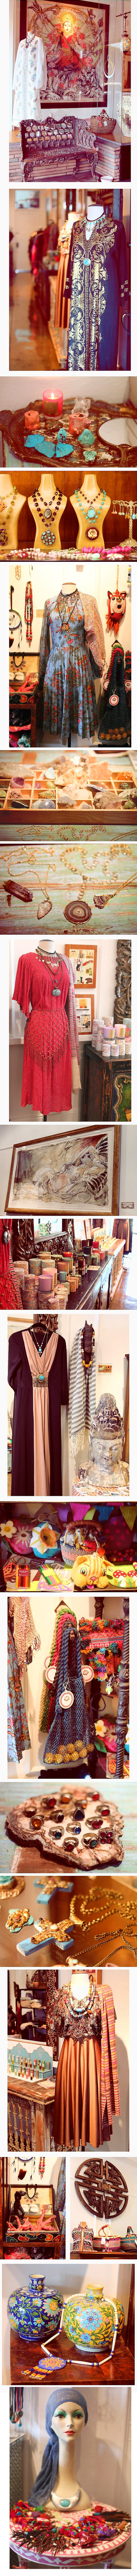 The Sage Lifestyle Boutique on Larchmont